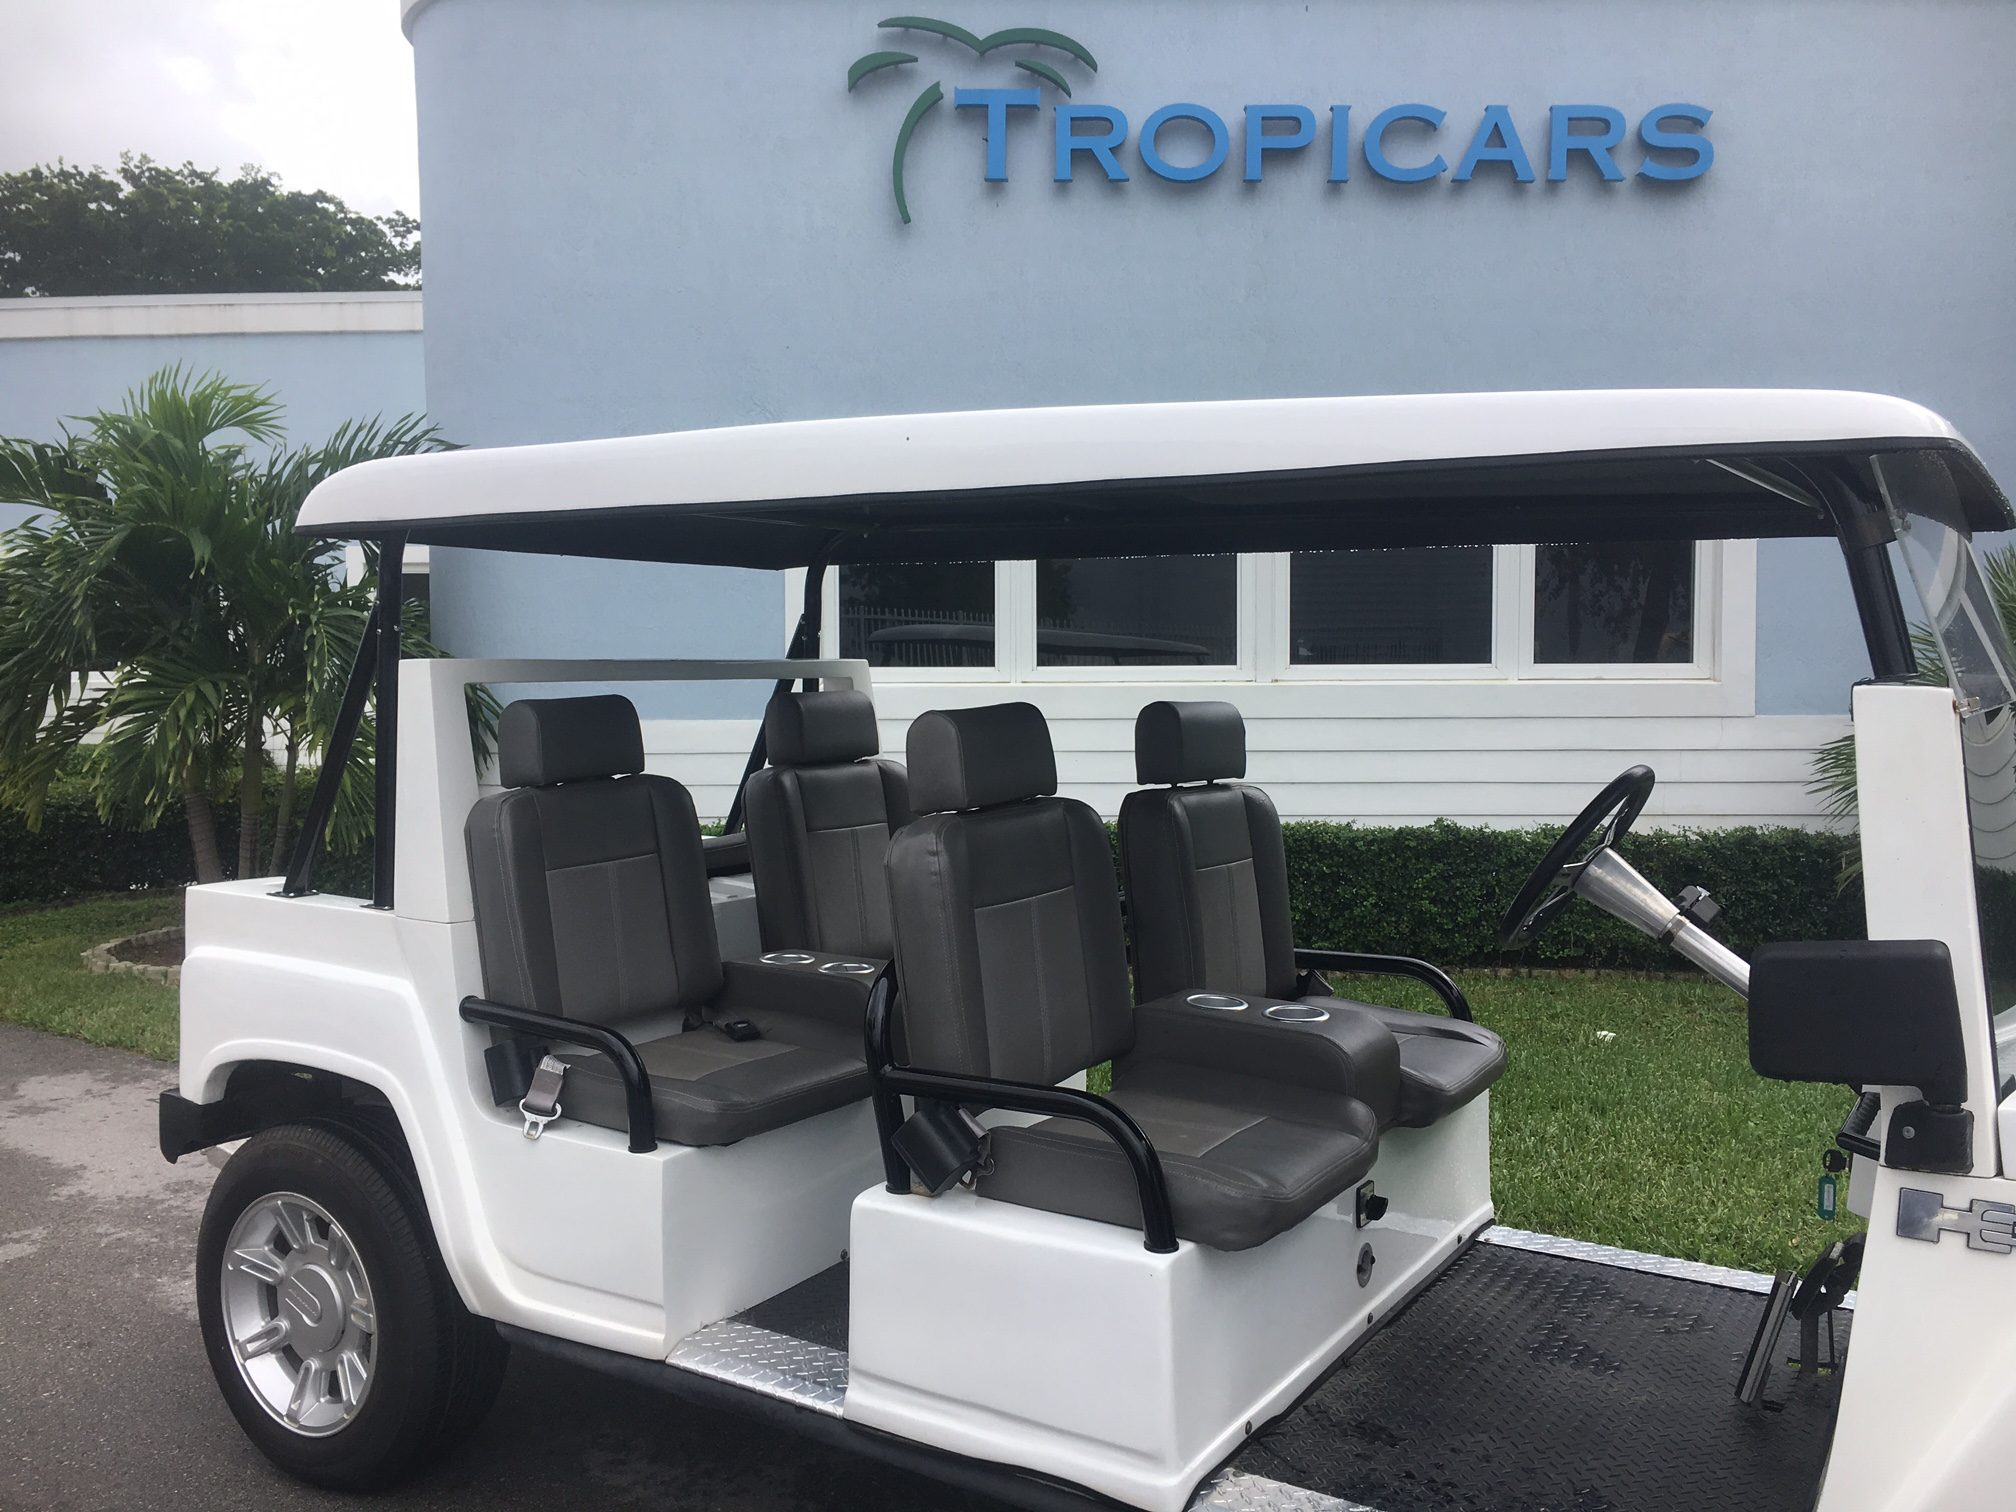 2015 Custom Hummer Personal Vehicles For Sale Tropicars Golf